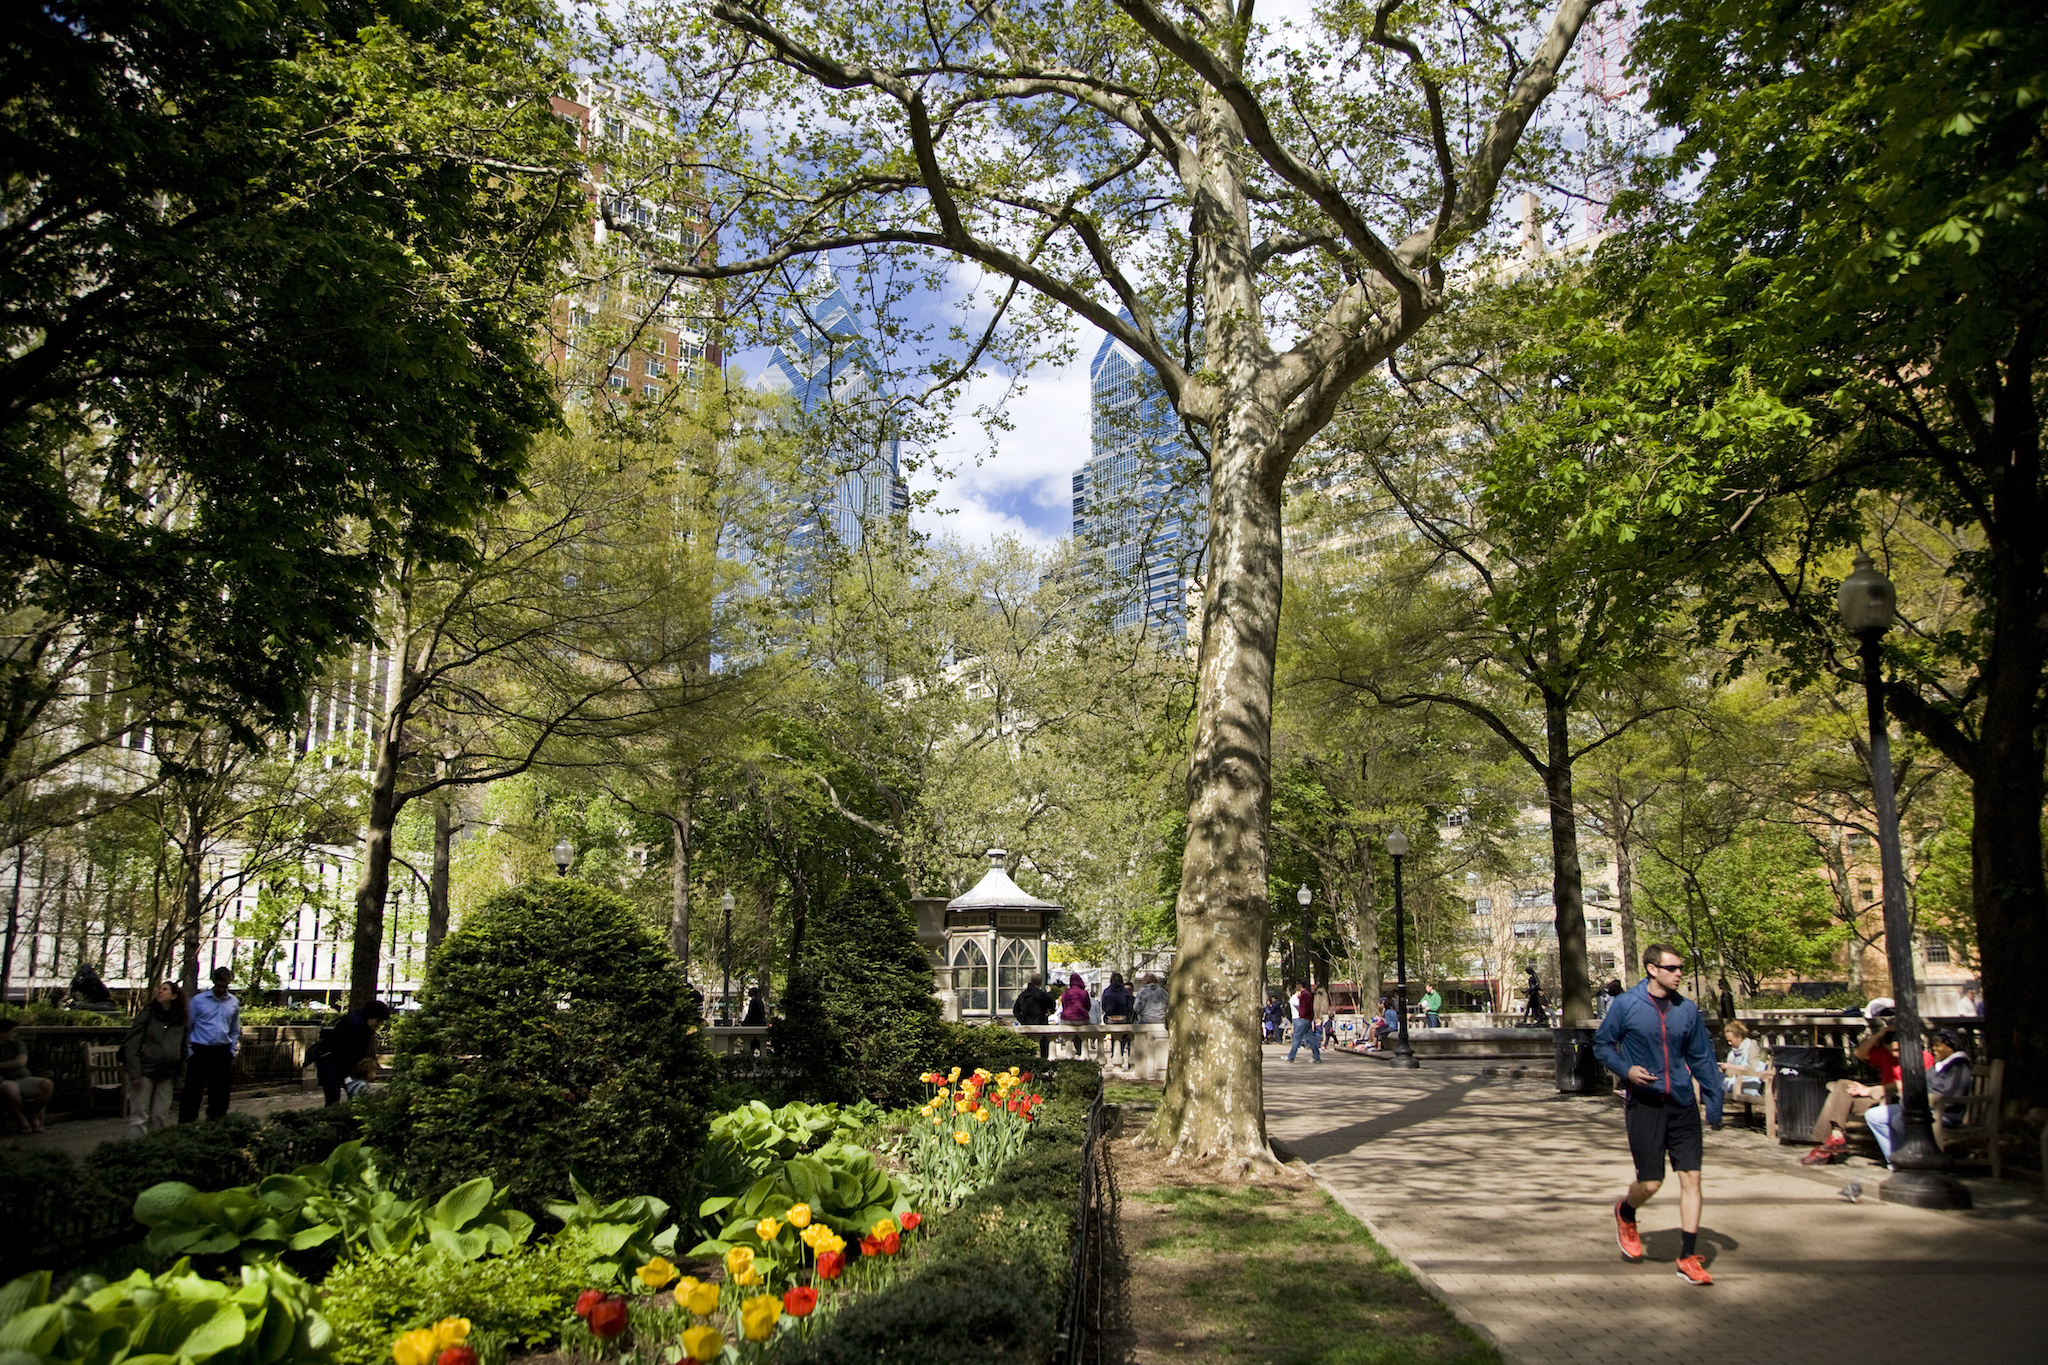 When you're thinking about where to stay in Philadelphia, choose Rittenhouse for its gorgeous public square and excellent shopping